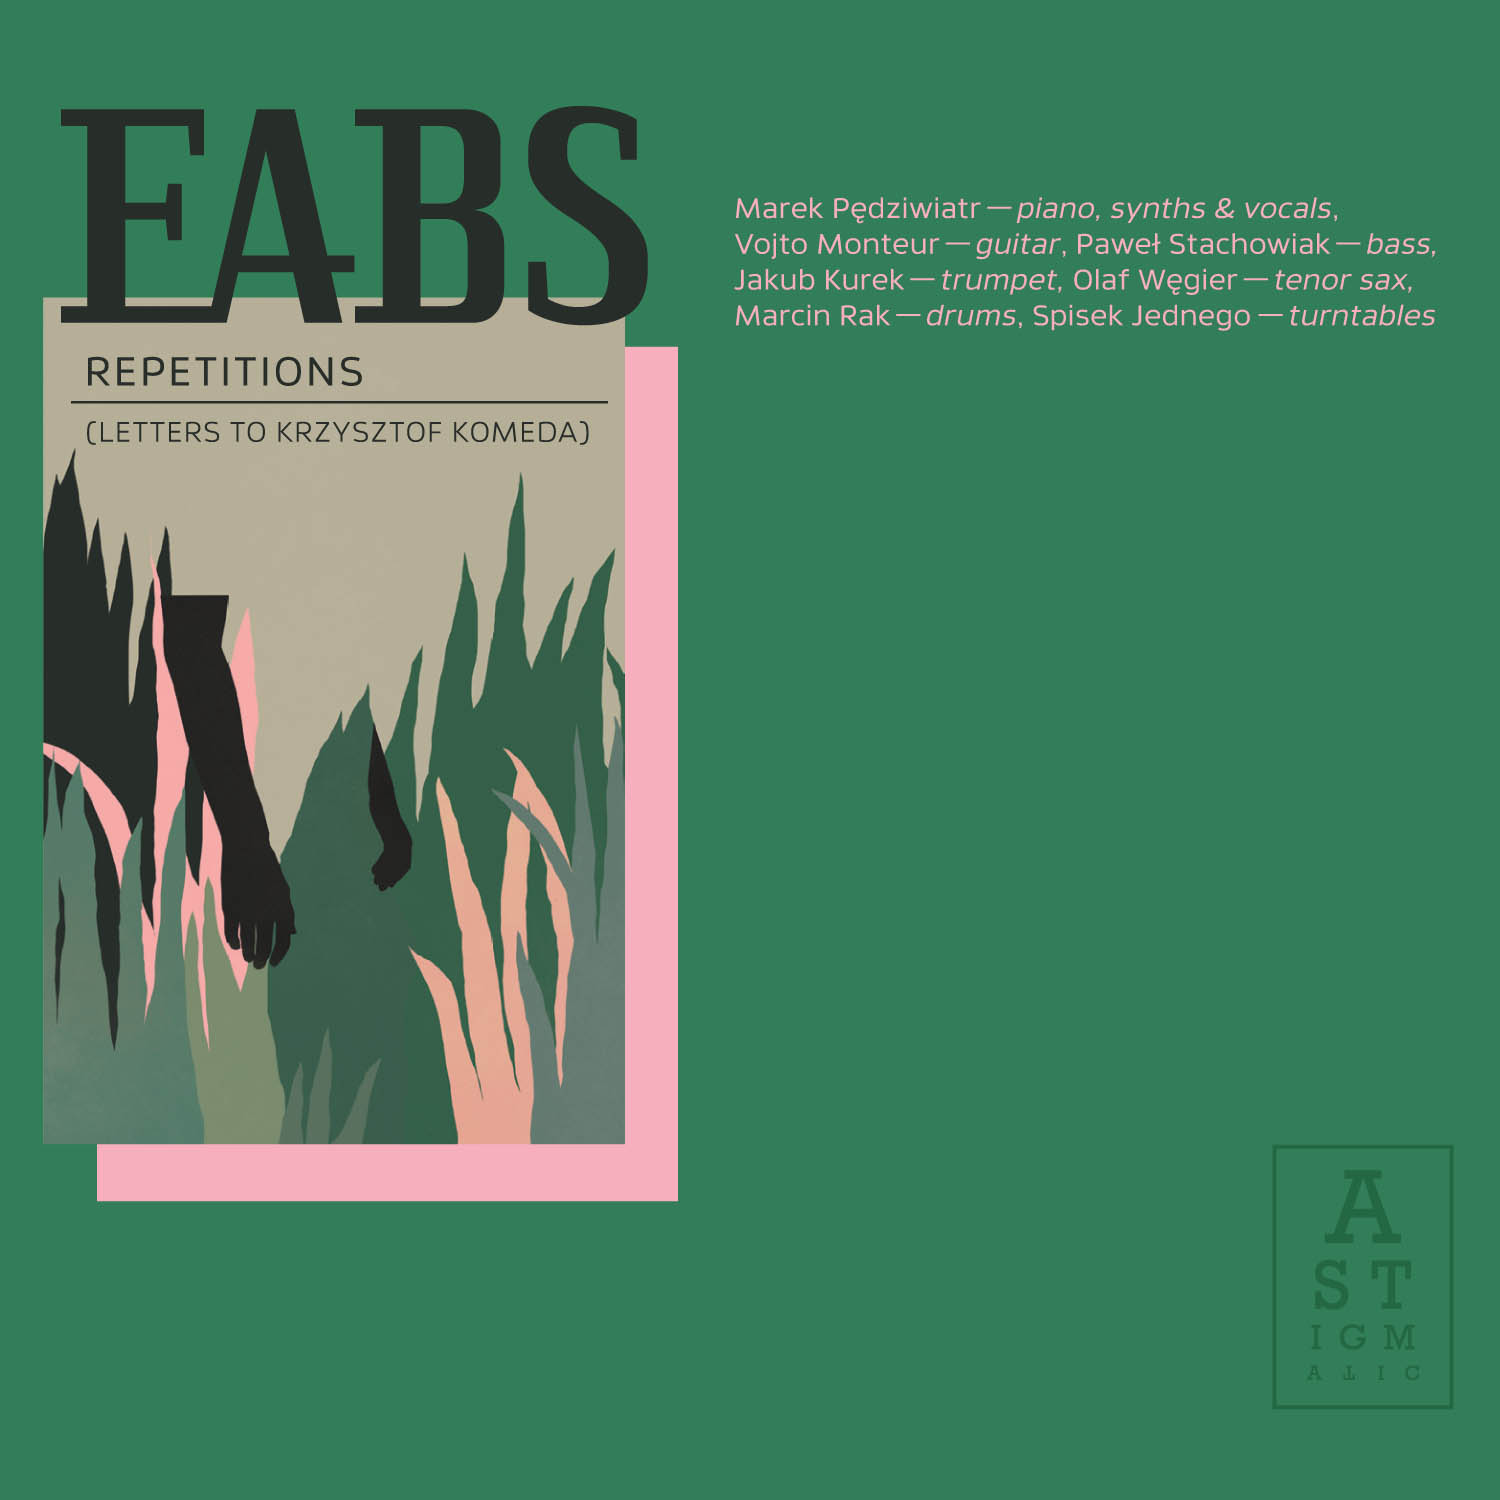 EABS-Repetitions_(Letters_to_Krzysztof_Komeda)_COVER